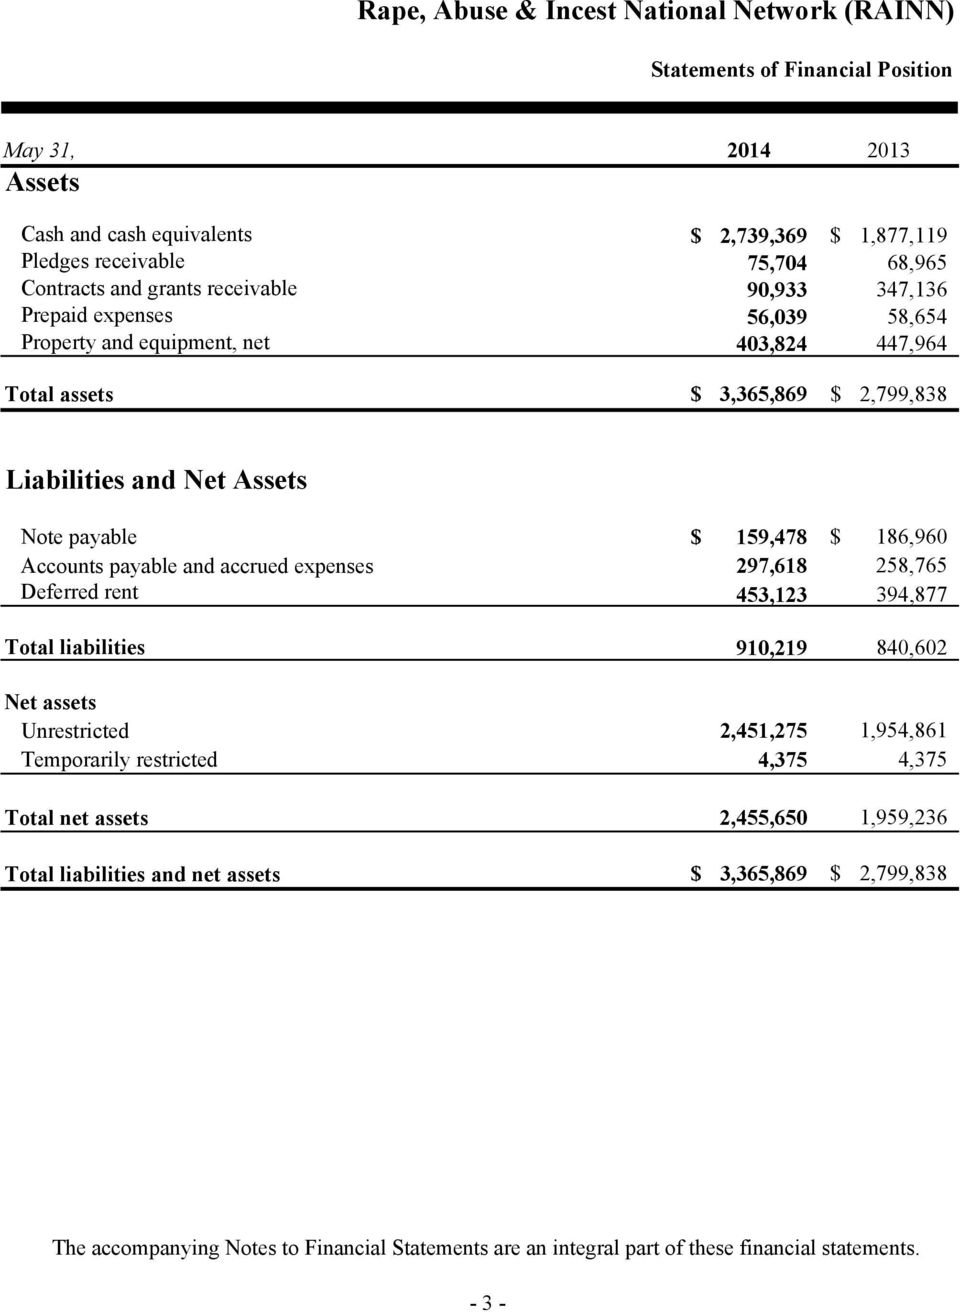 and accrued expenses 297,618 258,765 Deferred rent 453,123 394,877 Total liabilities 910,219 840,602 Net assets Unrestricted 2,451,275 1,954,861 Temporarily restricted 4,375 4,375 Total